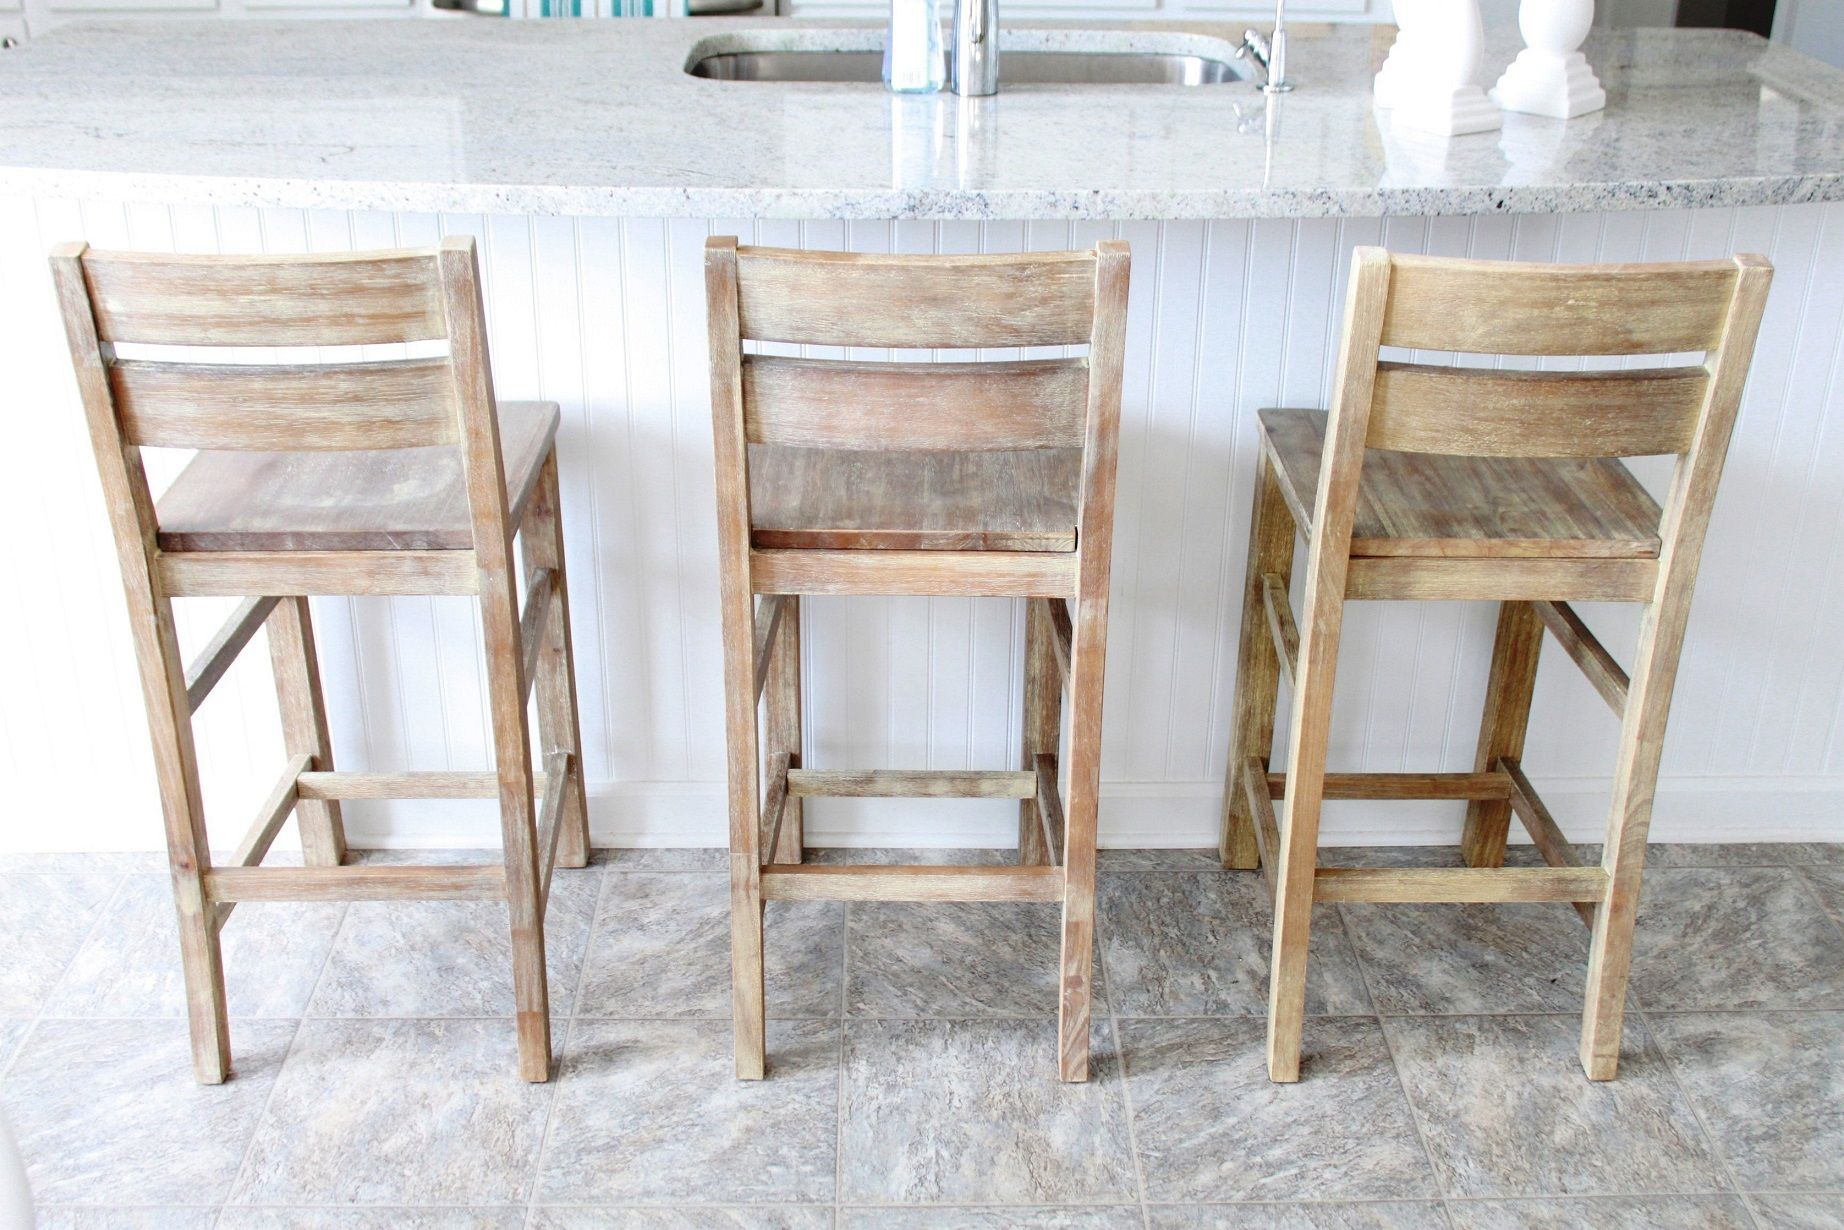 Bar And Stools For Home Diy Bar Stools With Backs Ideas Kitchen In 2019 Diy